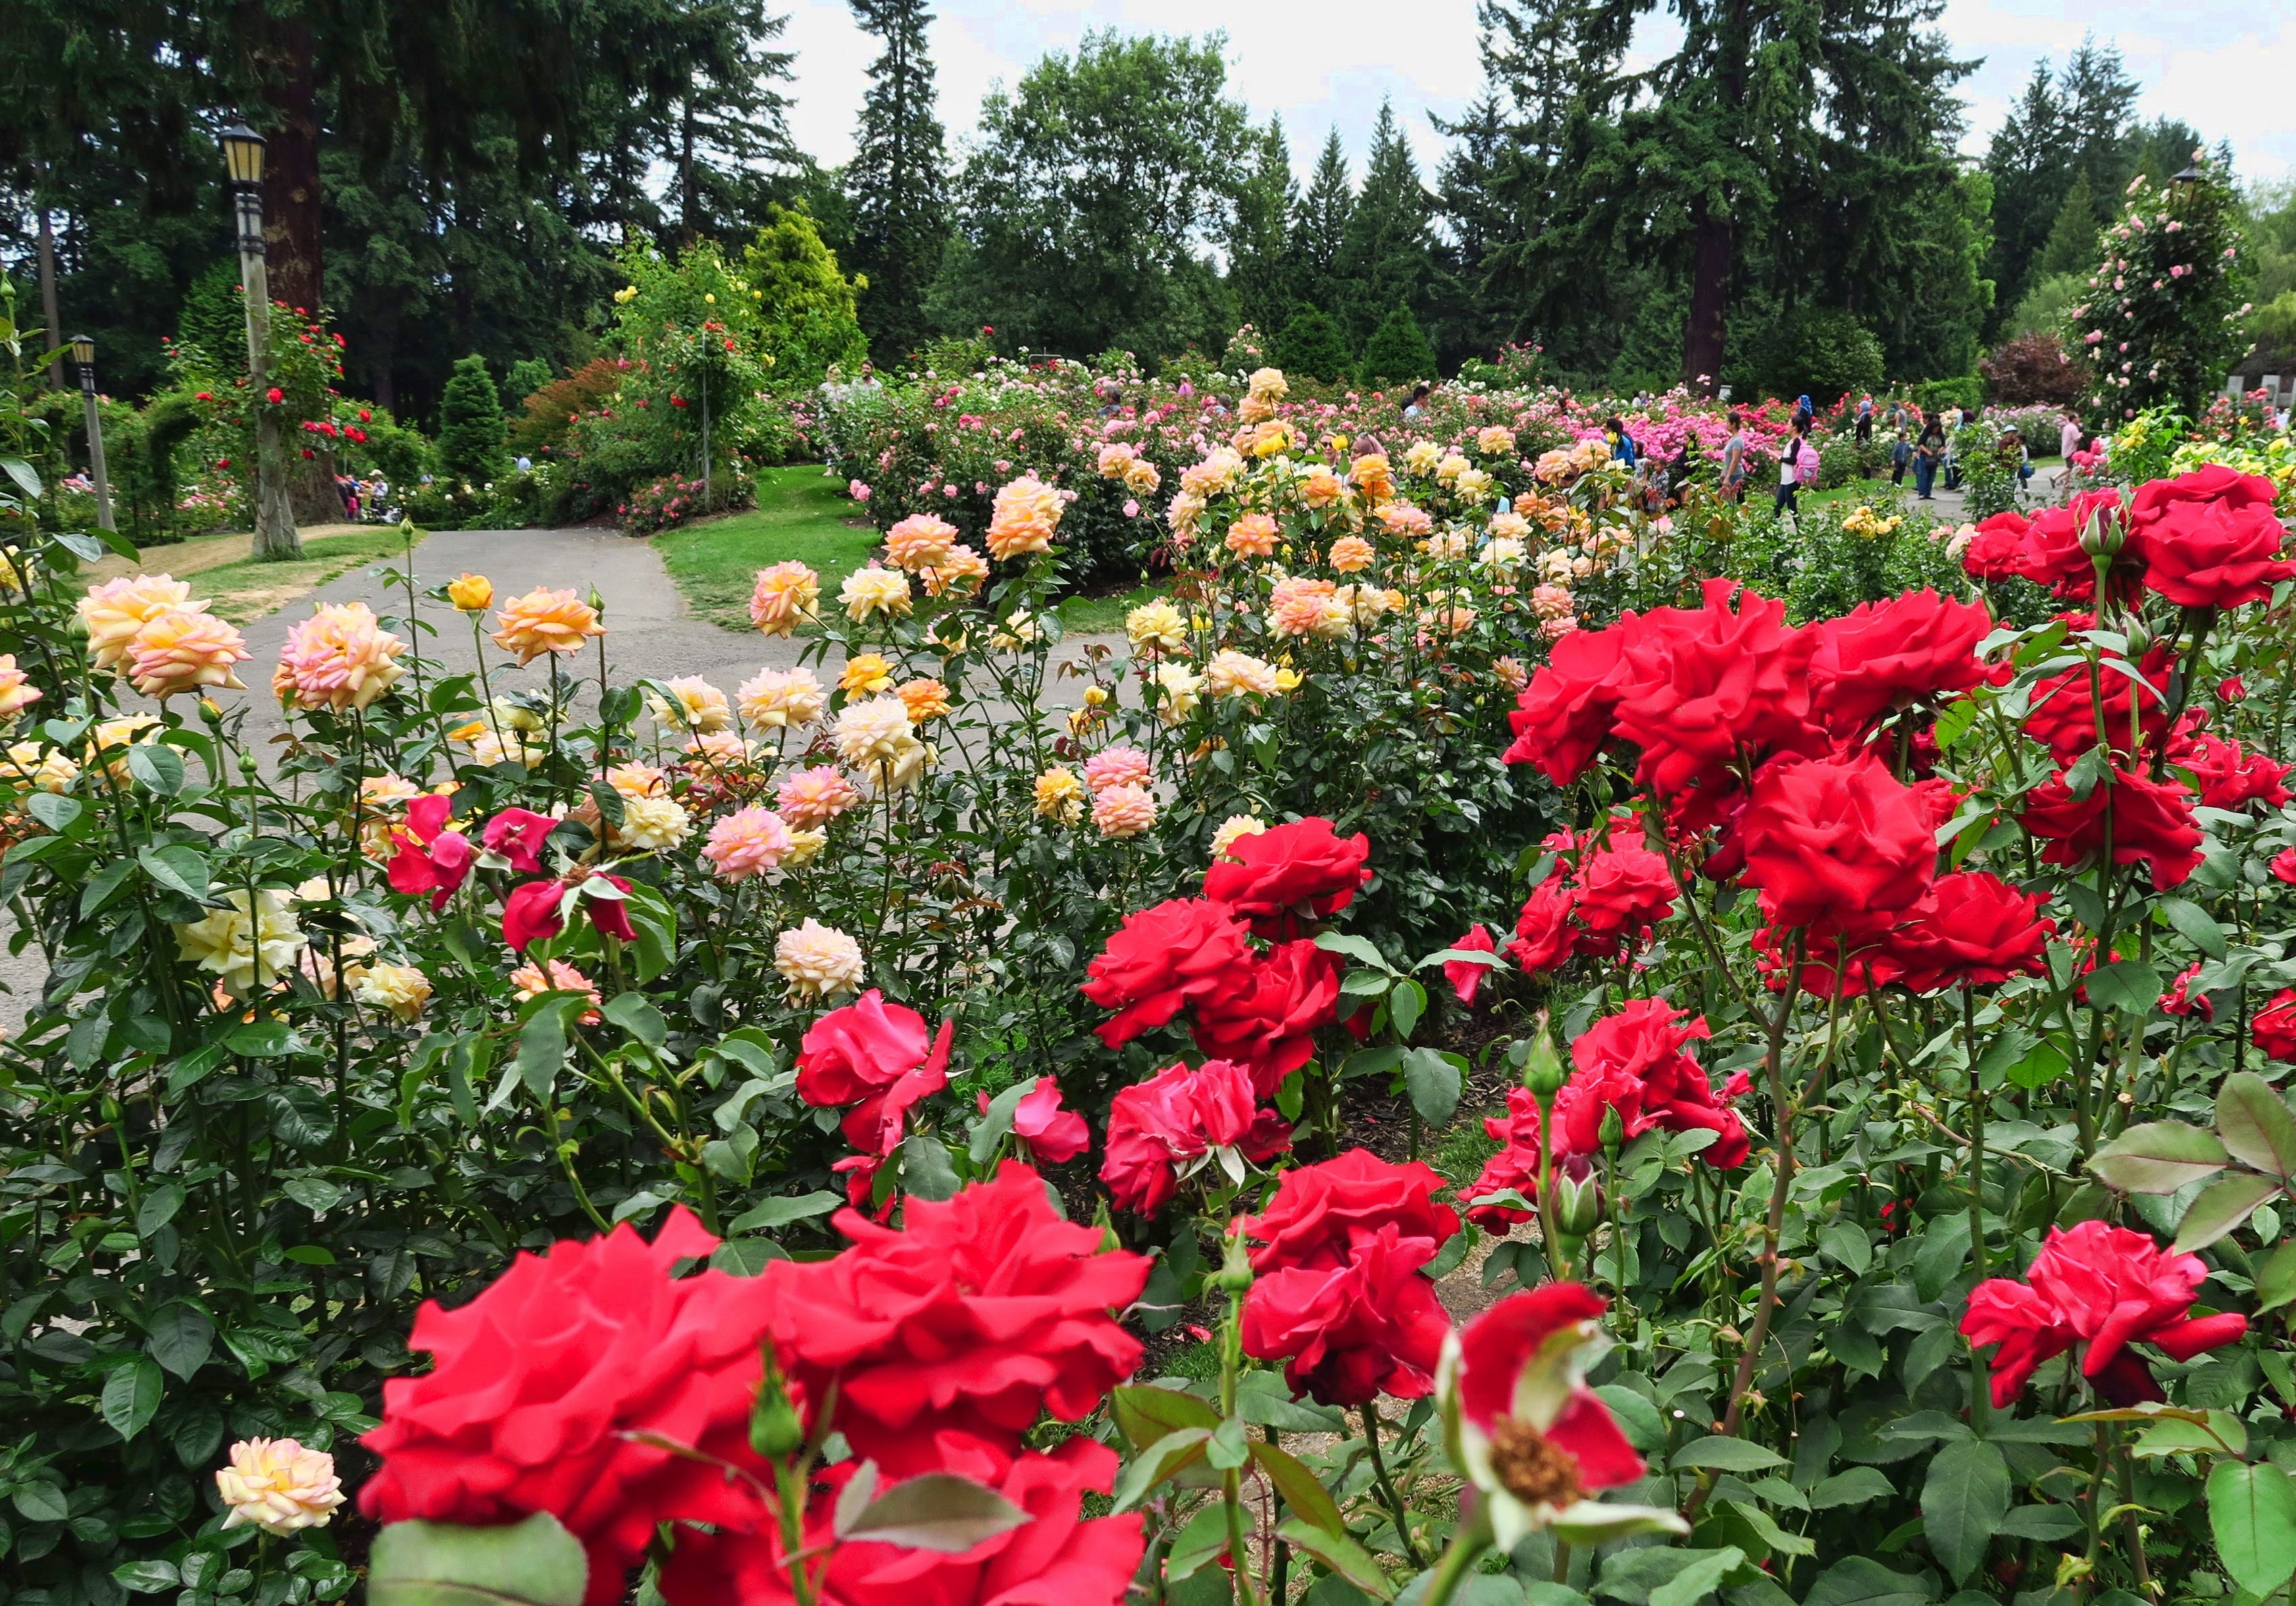 Portland's International Rose Garden is largest I have ever seen.